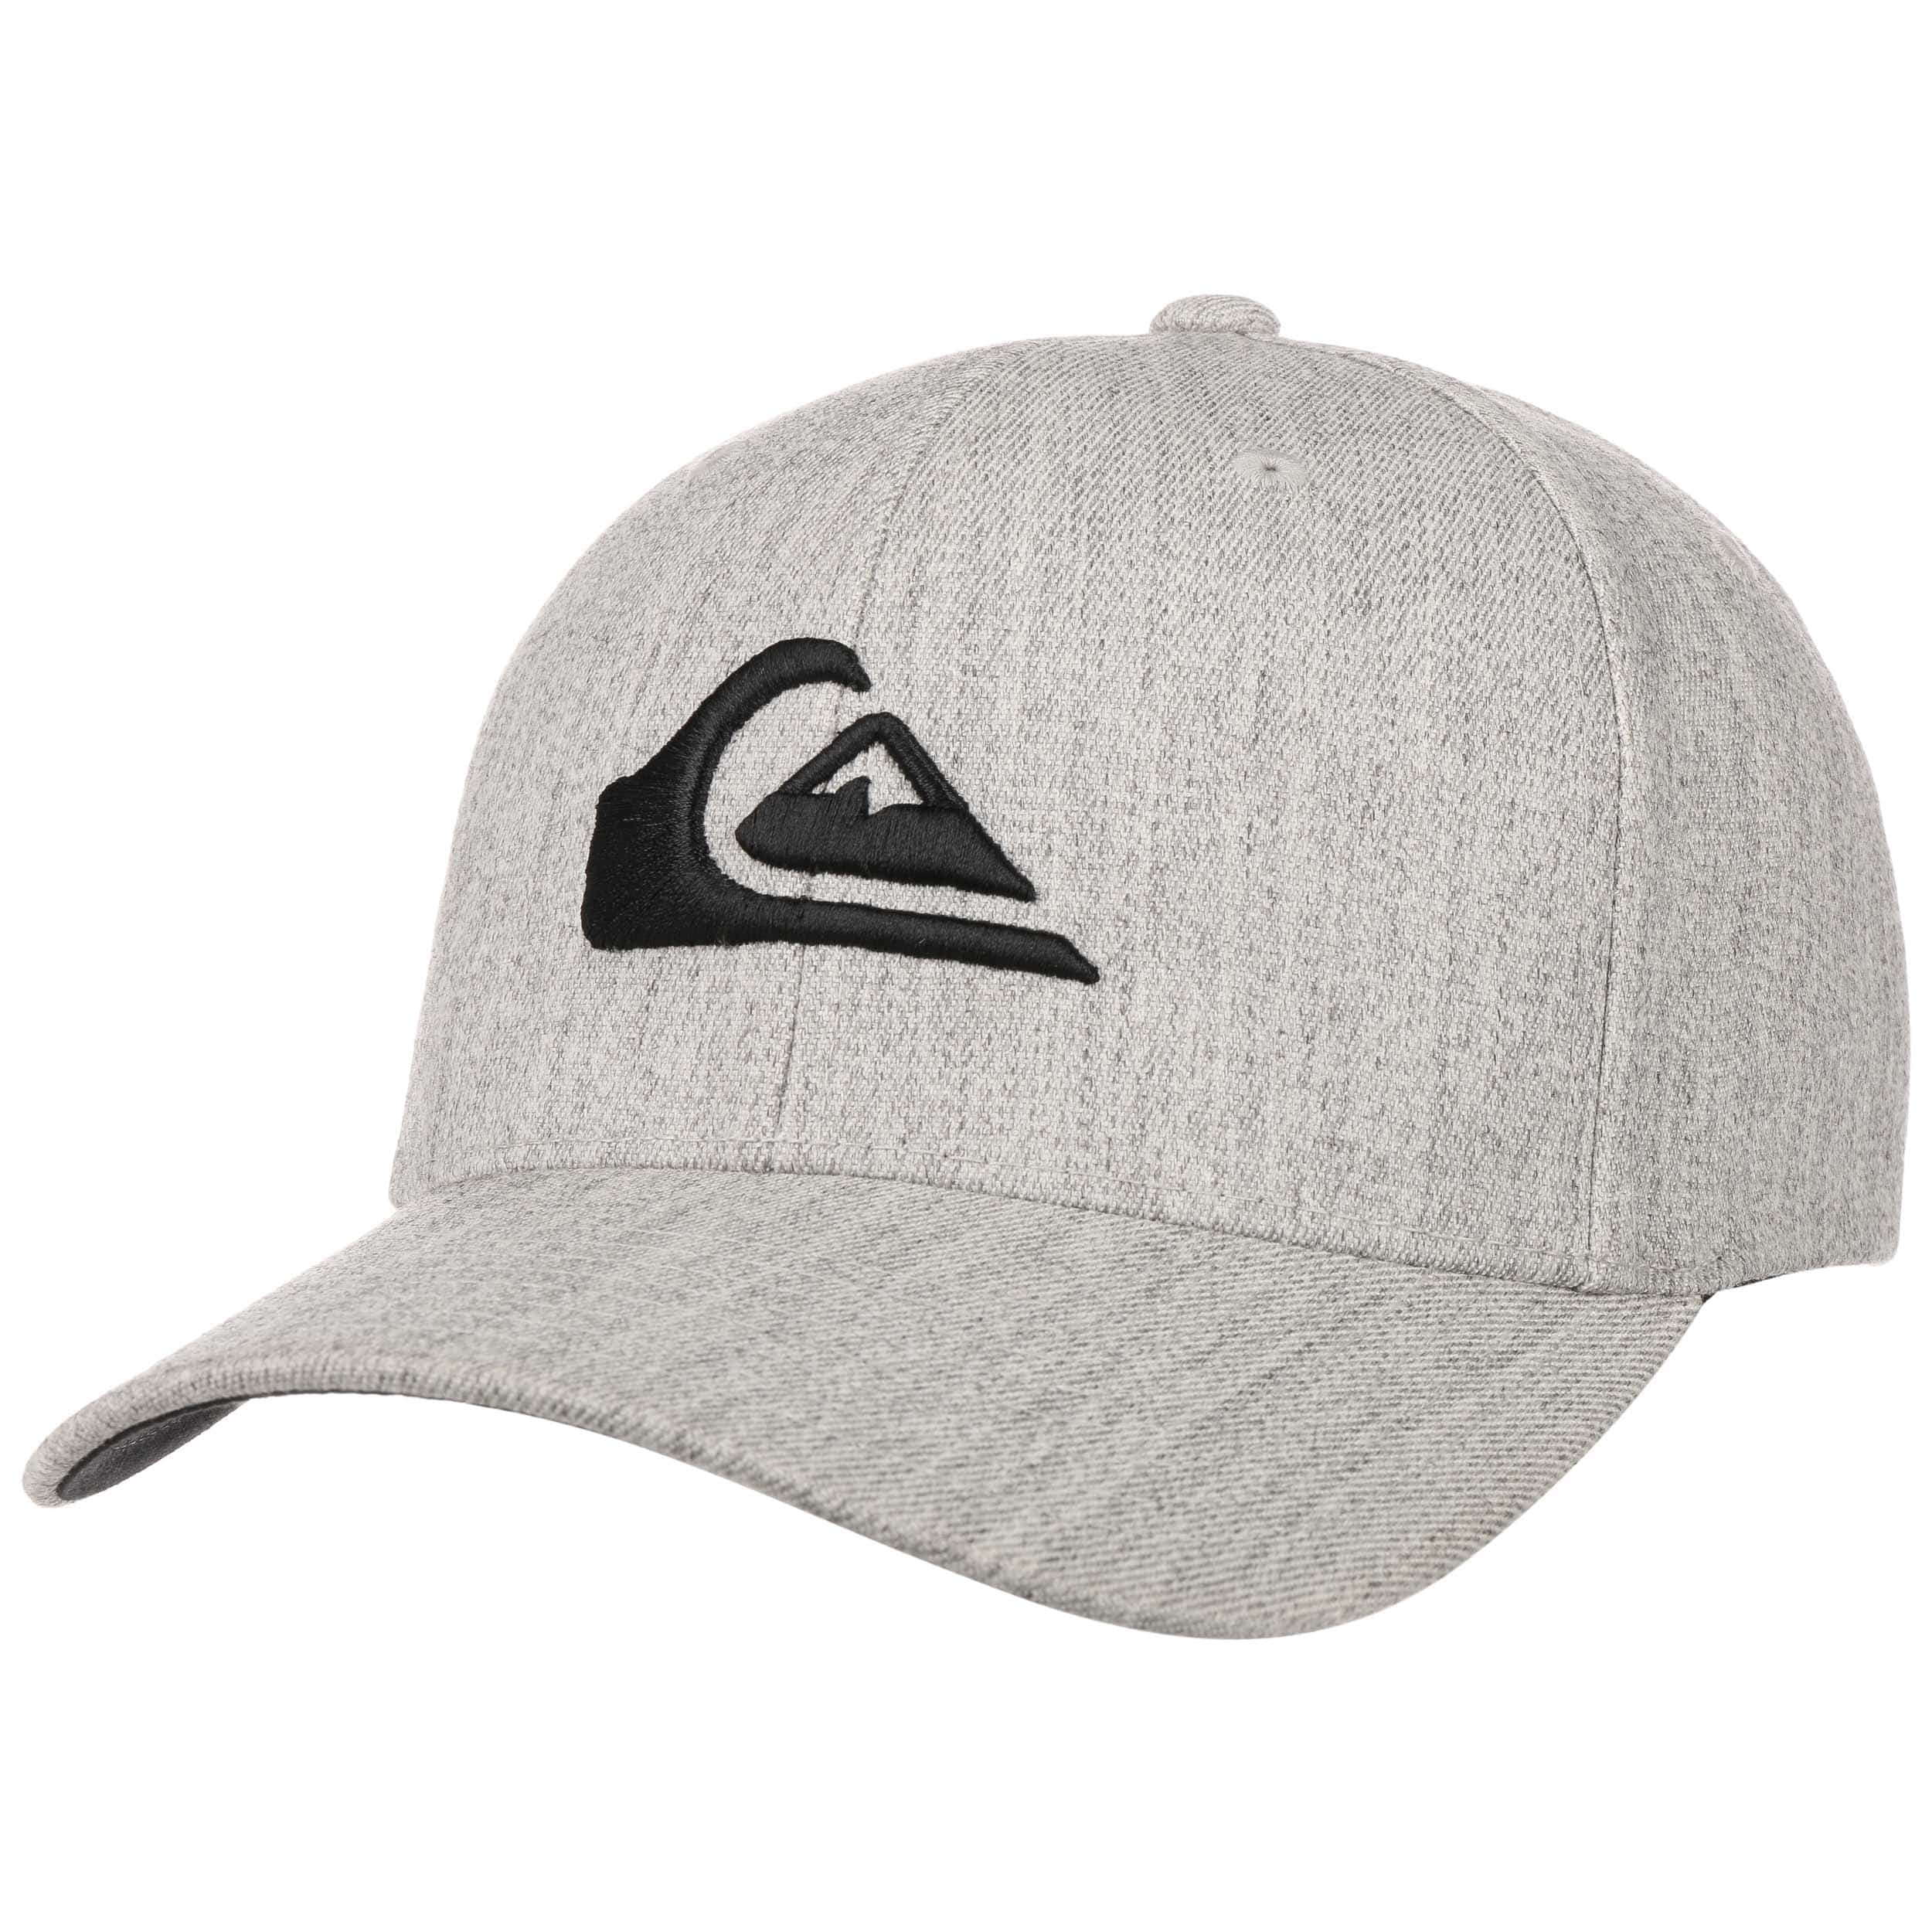 d5b2c1b41d20a ... promo code for mountain wave fitted cap by quiksilver 2 29a05 9cf97